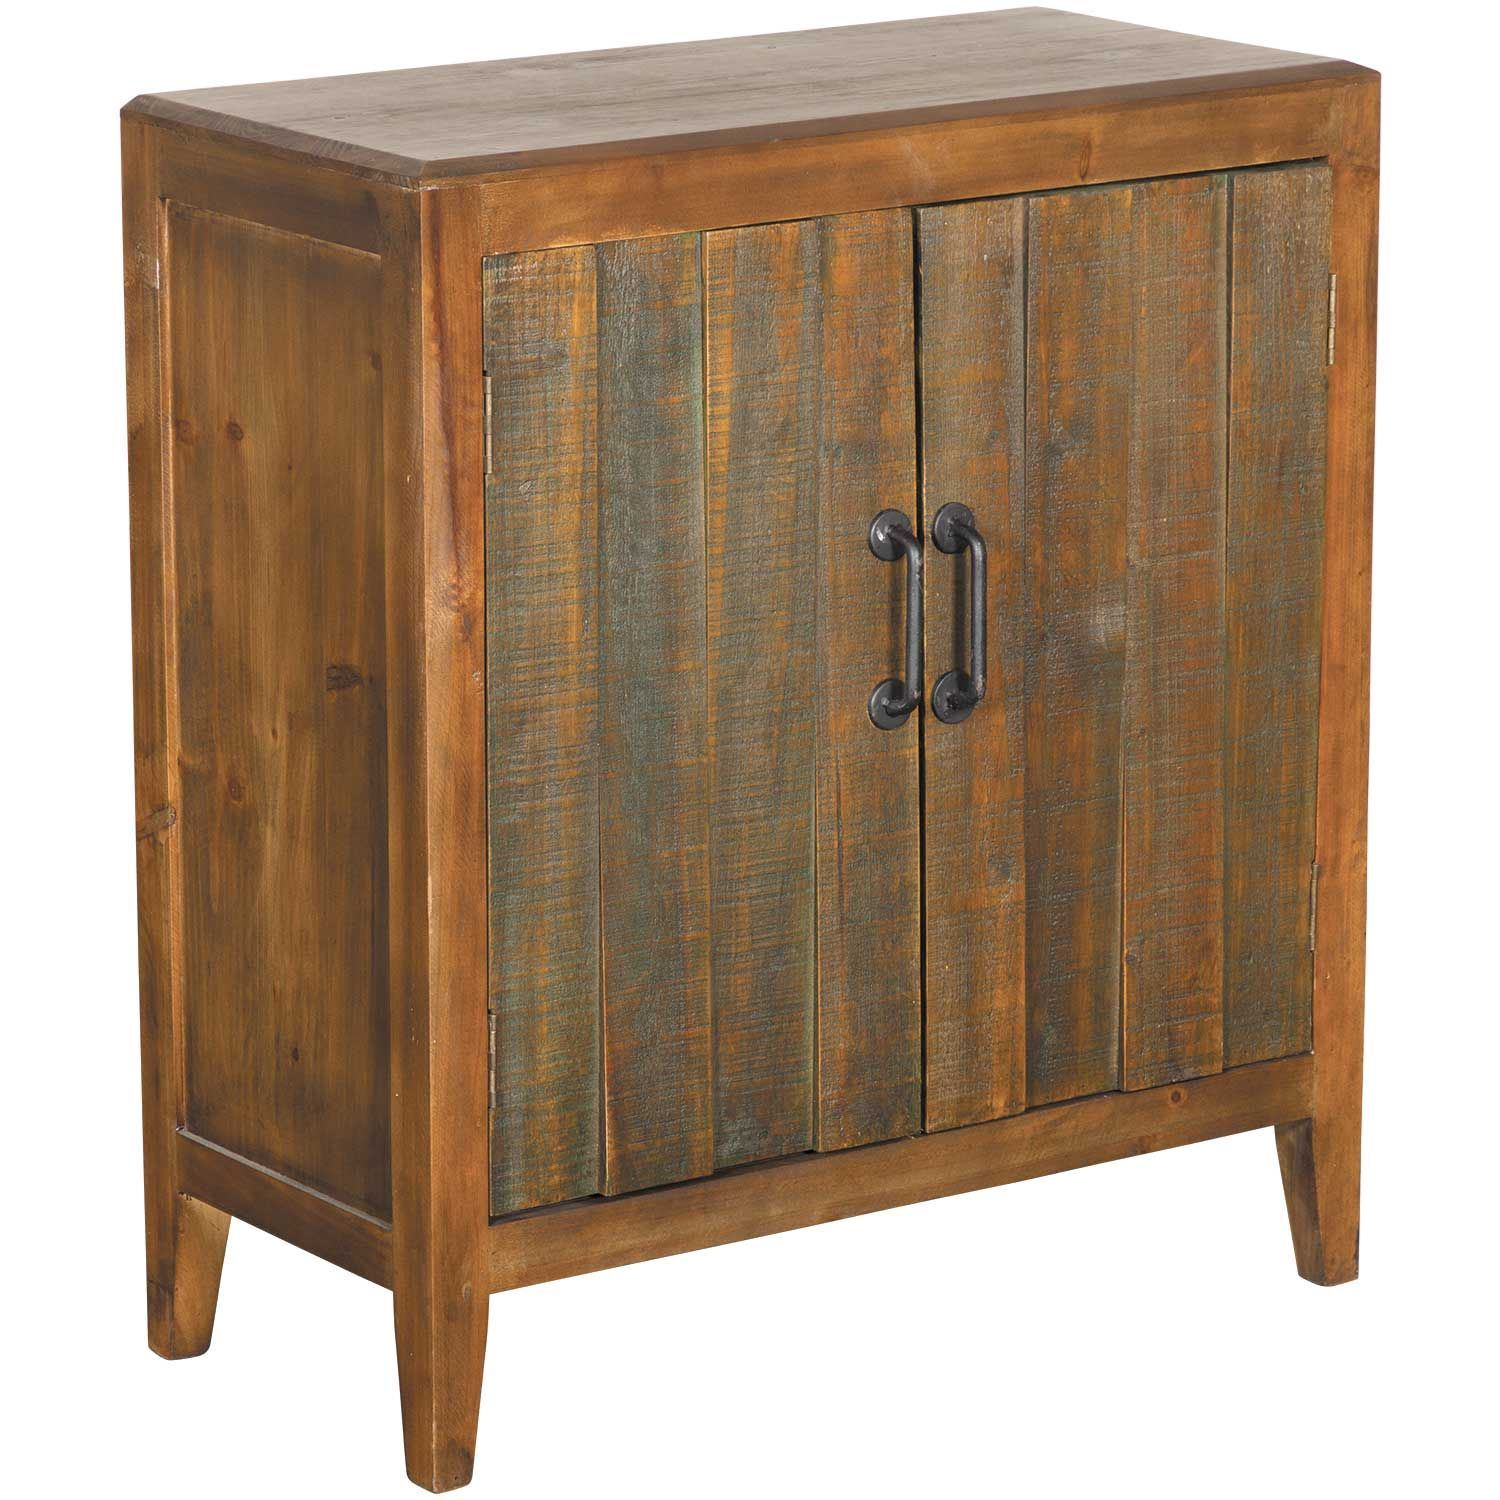 Picture of Rustic Accent Cabinet